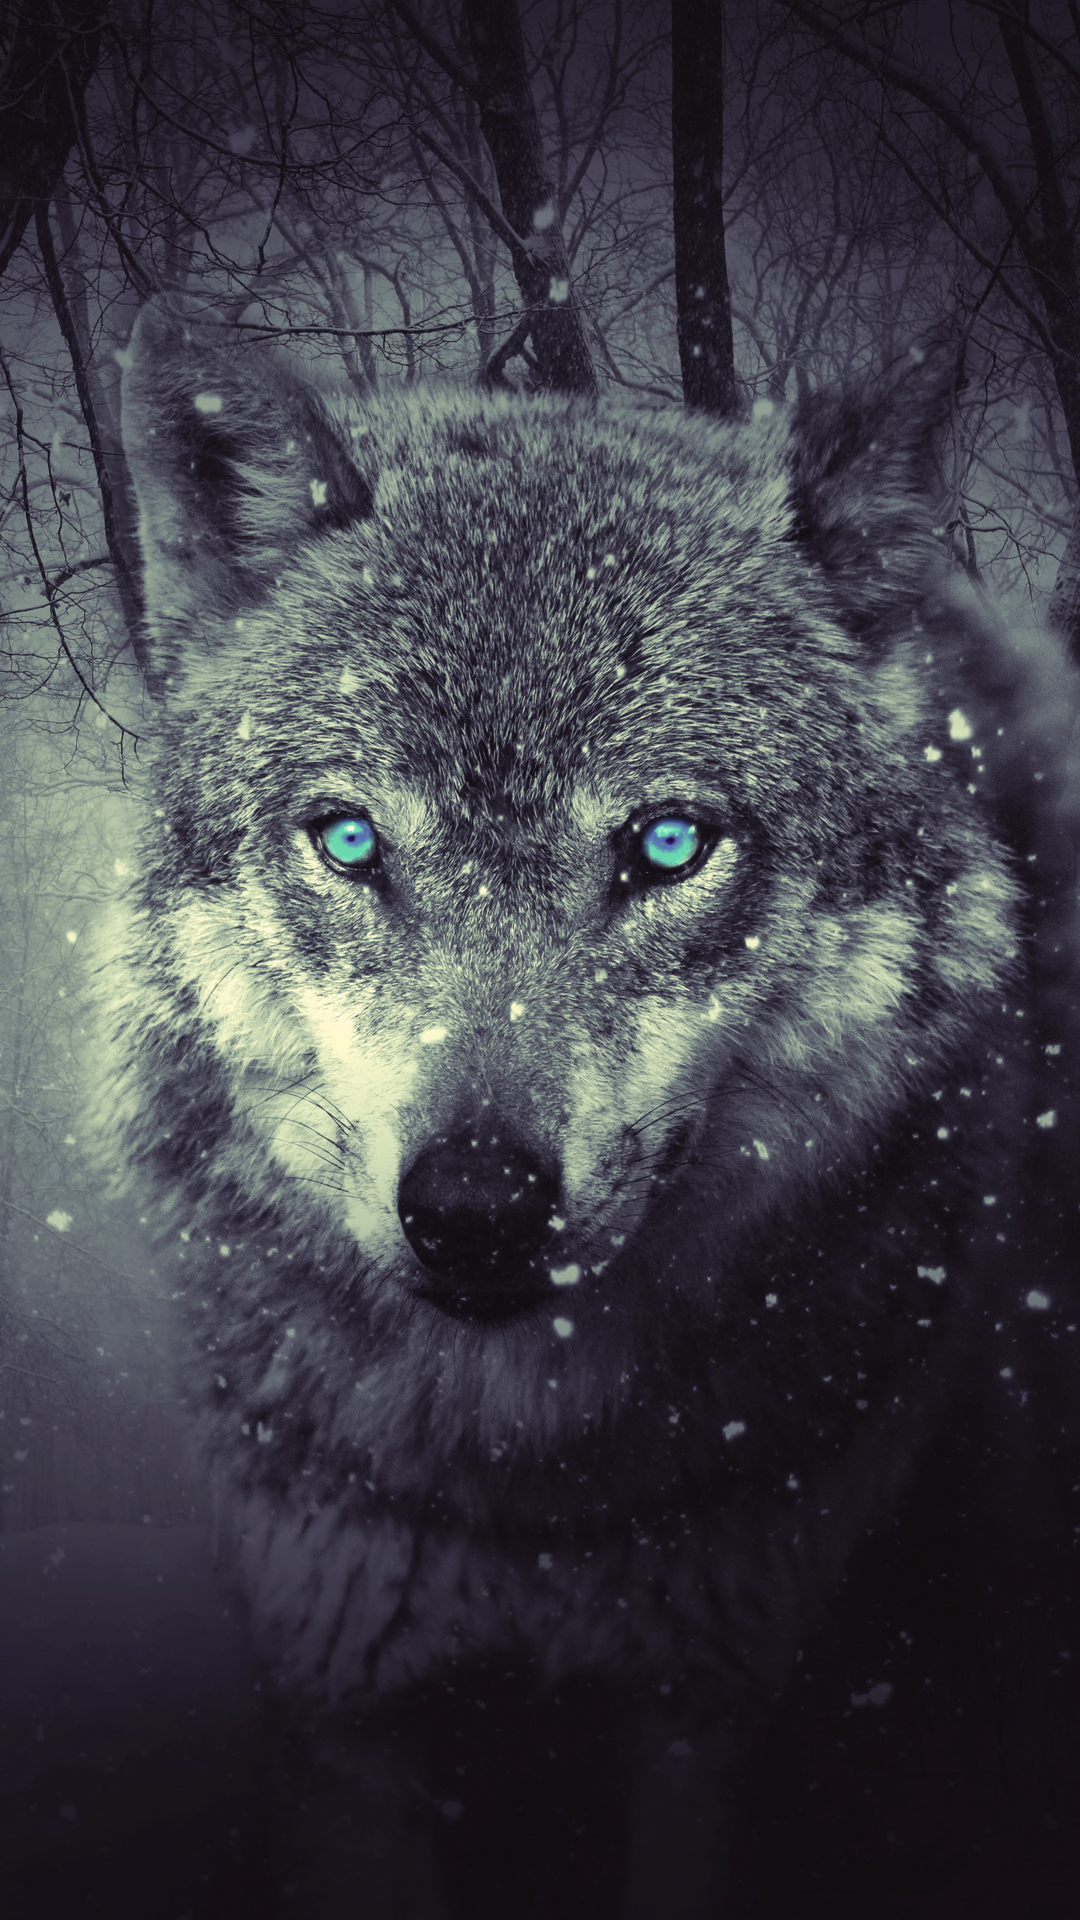 iPhone wallpaper forest wolf 3Wallpapers : notre sélection de fonds d'écran du 06/02/2018